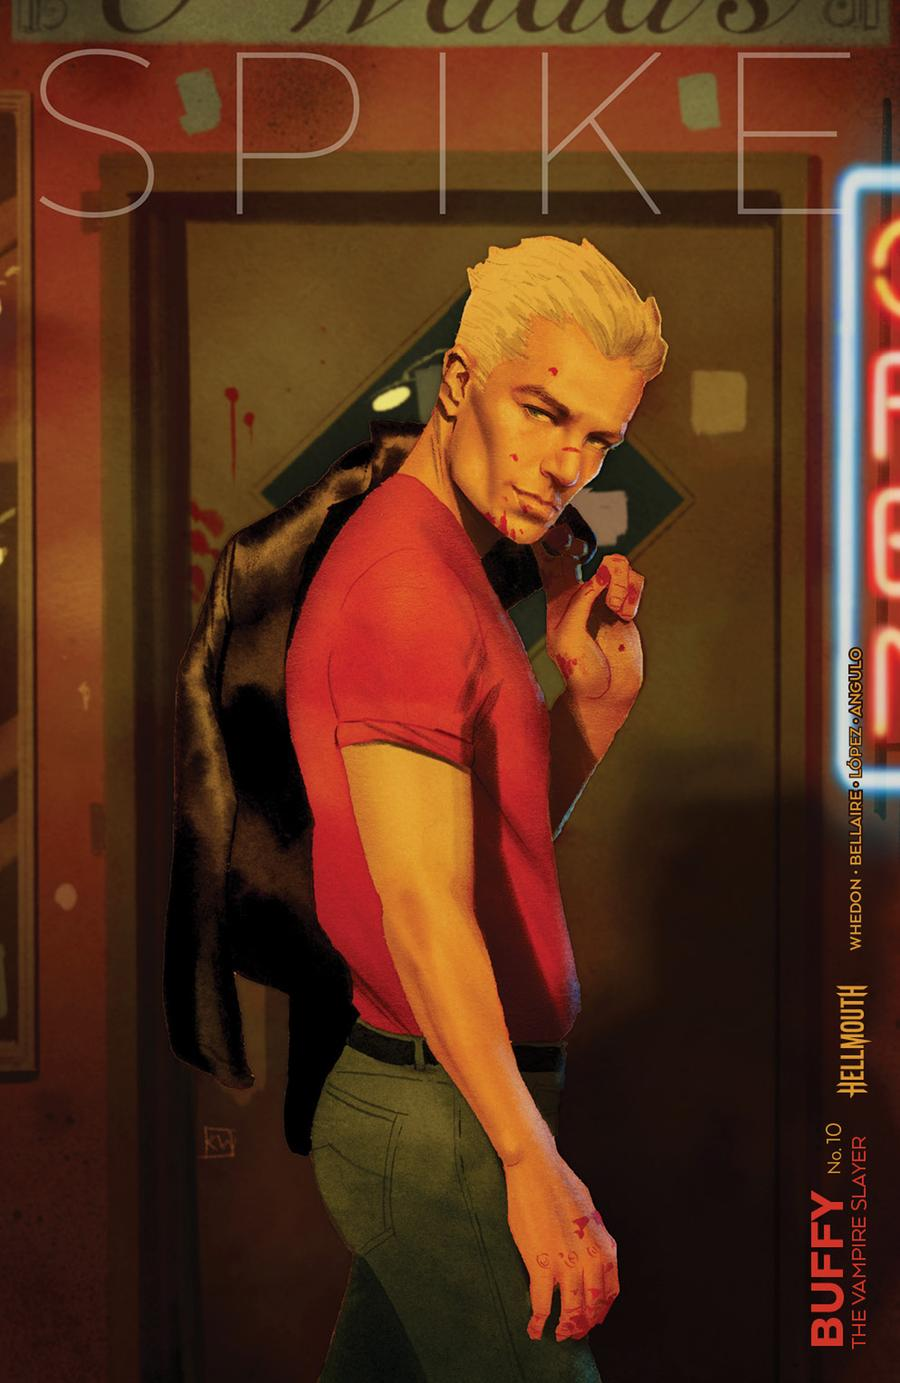 Buffy The Vampire Slayer Vol 2 #10 Cover B Variant Kevin Wada Cover (Hellmouth Tie-In)